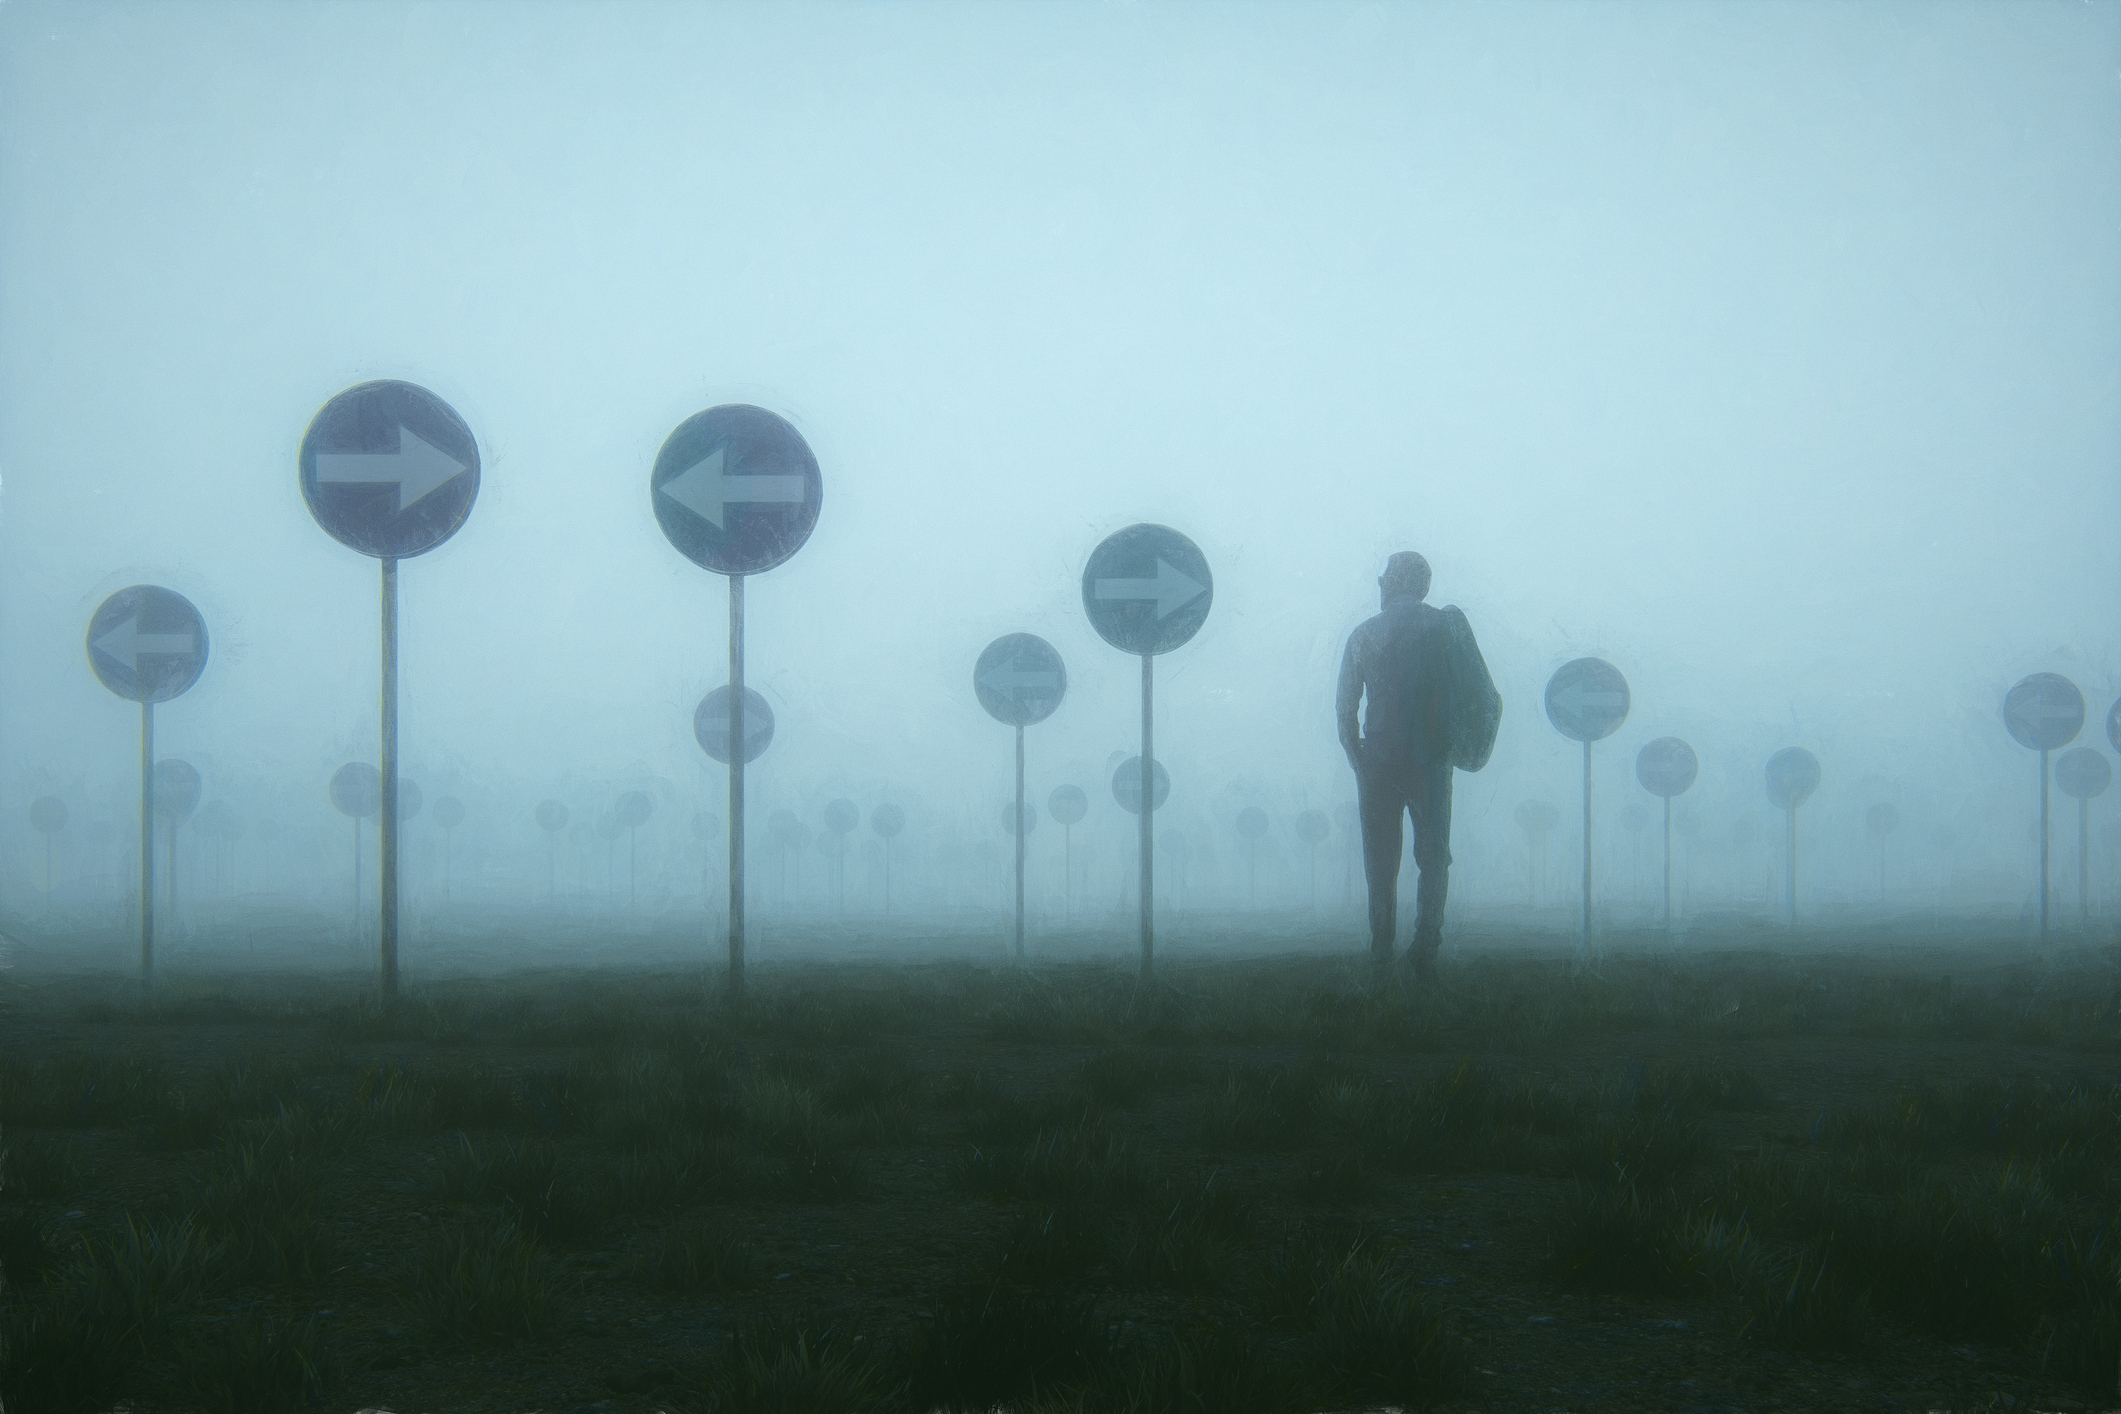 How can you move forward when you can't see very far ahead? A man walks through the fog, ready to pivot.